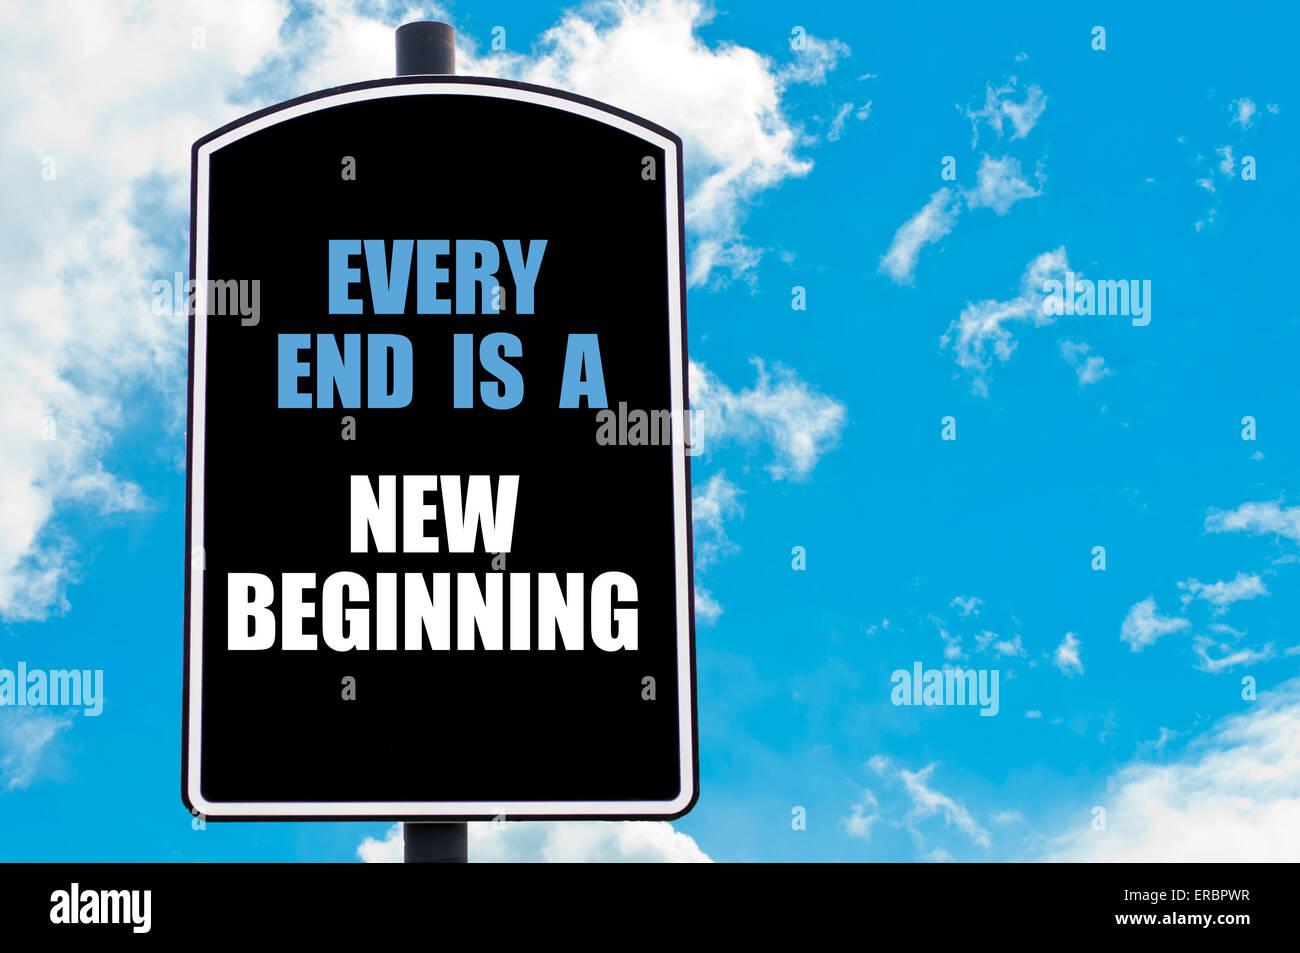 Every End Is A New Beginning Motivational Quote Written On Road Sign